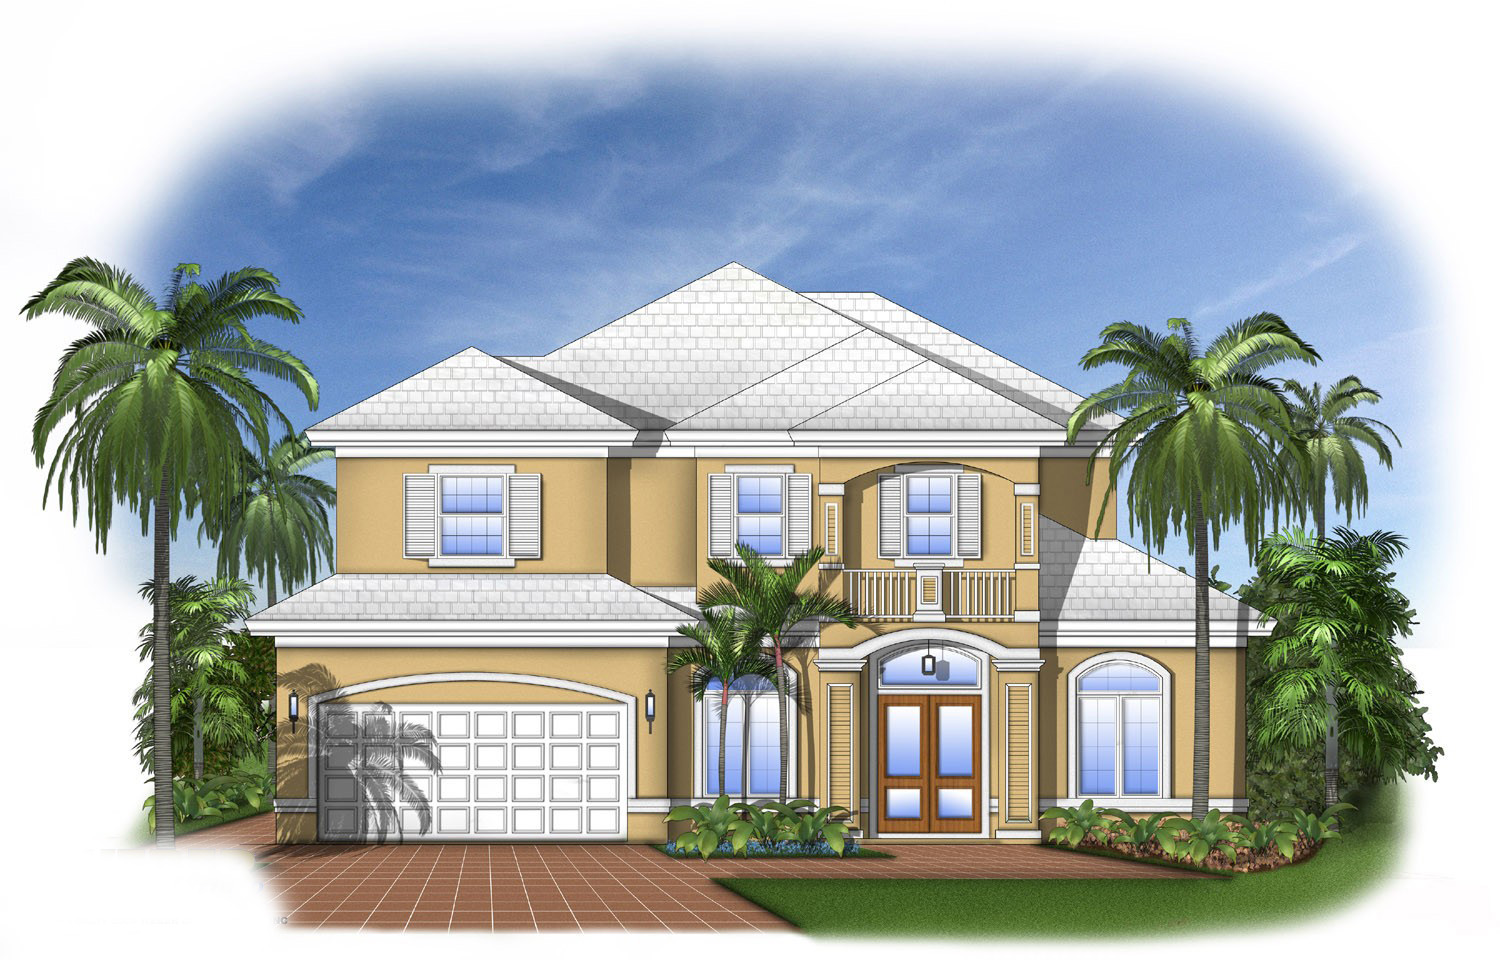 Florida house plan with open layout 66102we for Florida house plans with photos